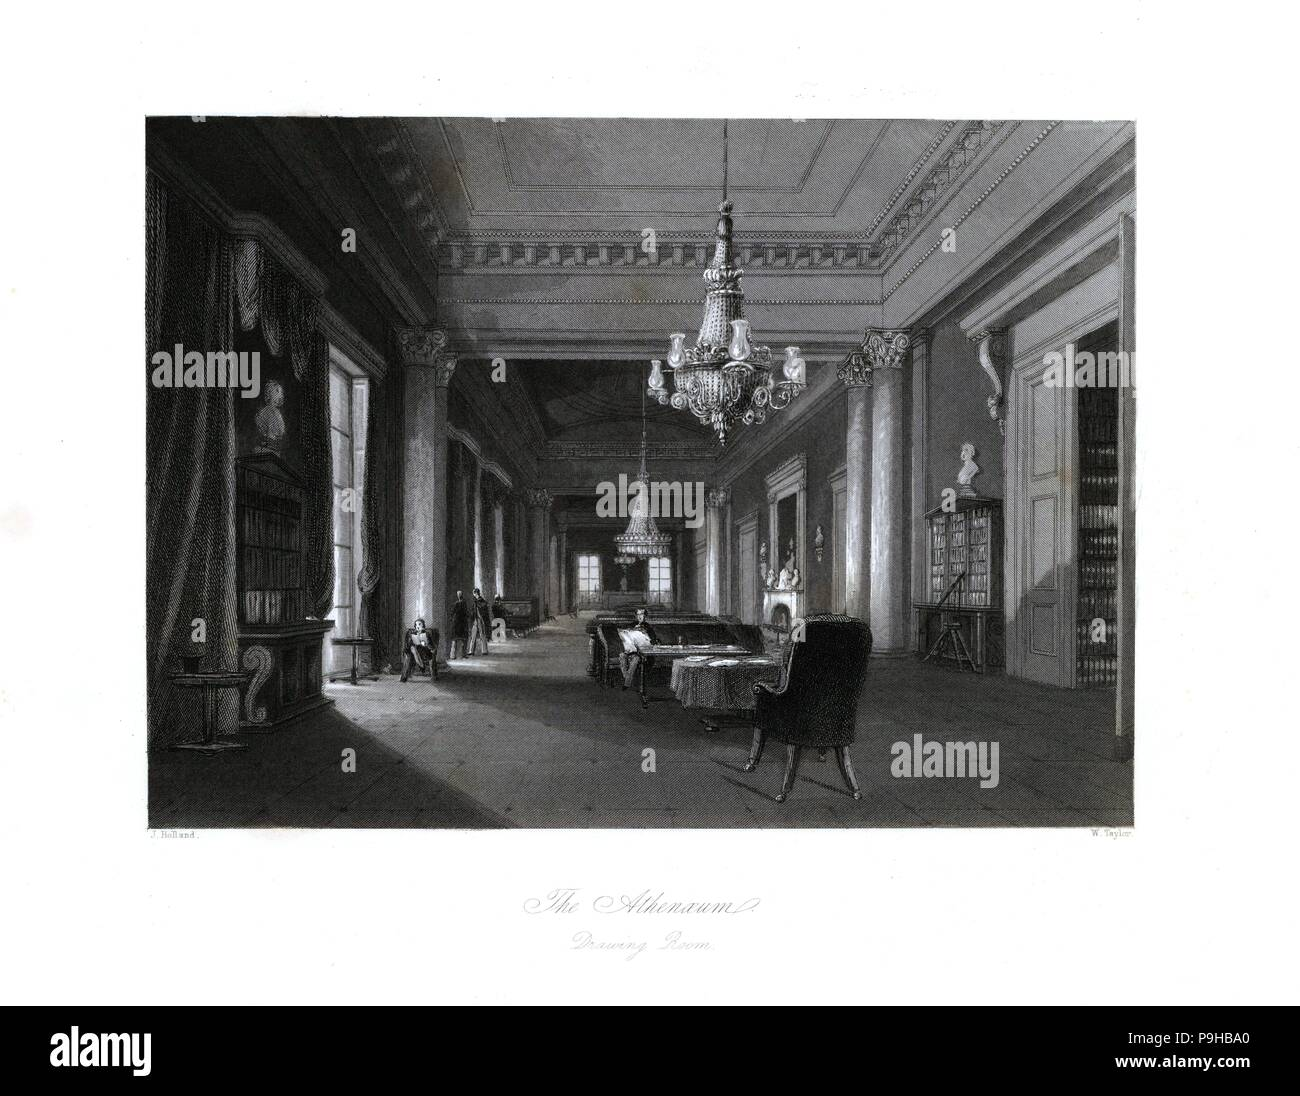 The drawing room in the Athenaeum Club. Steel engraving by Melville after an illustration by L.L. Hewitt from London Interiors, Their Costumes and Ceremonies, Joshua Mead, London, 1841. - Stock Image